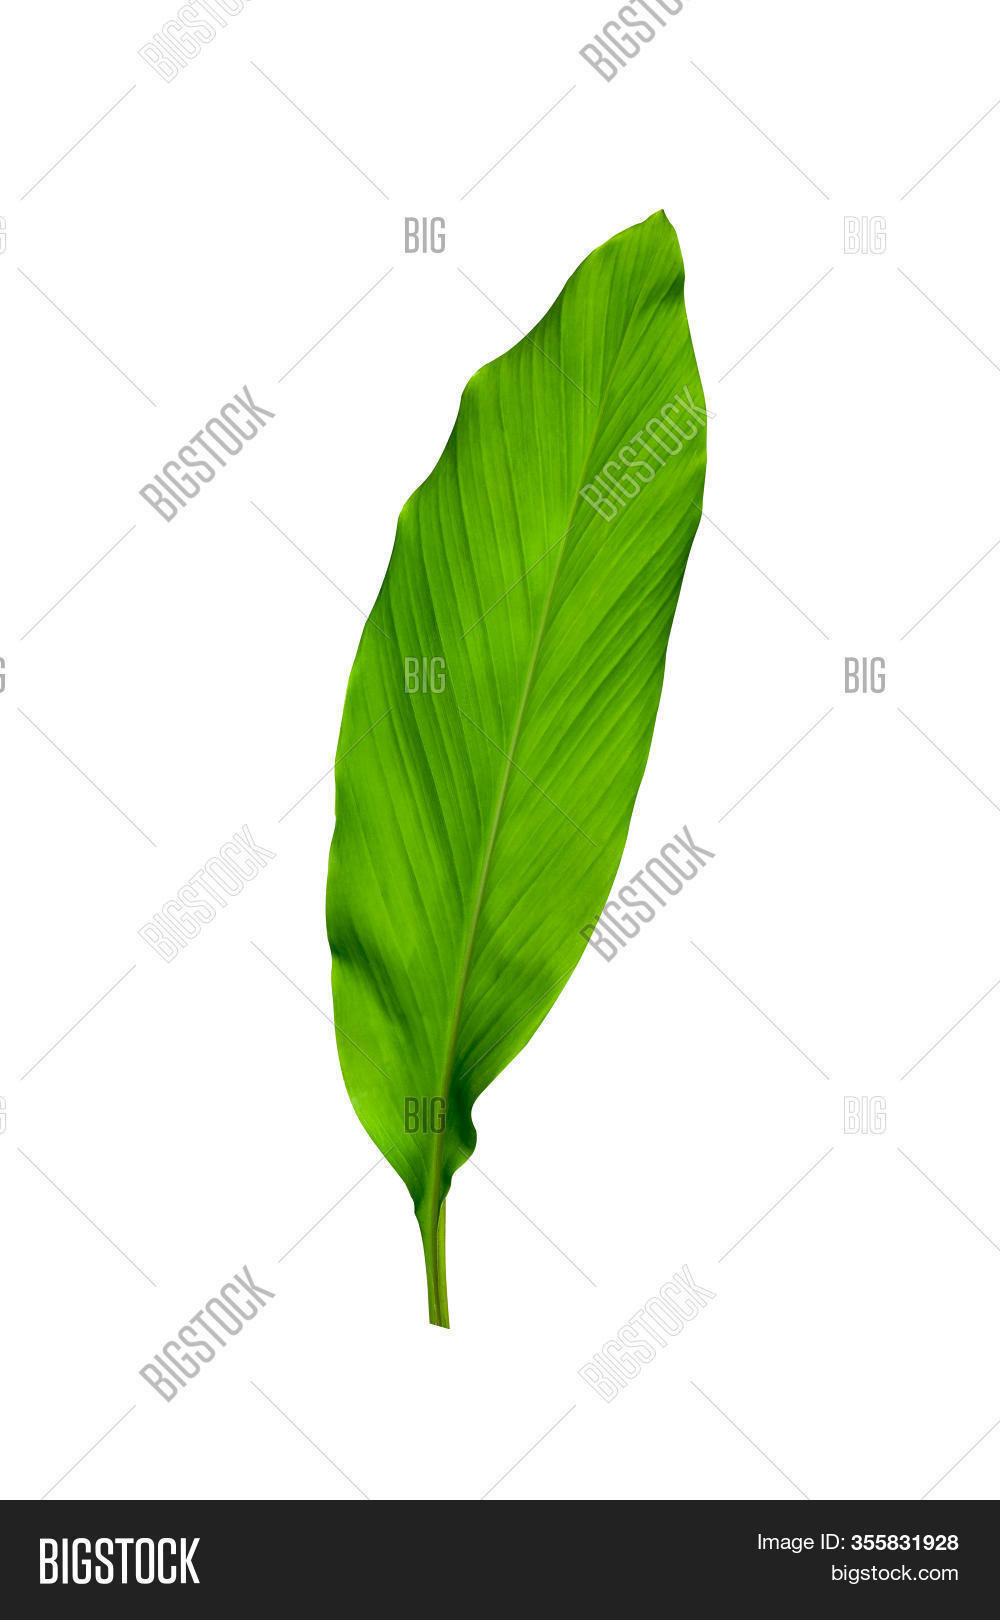 Green Leaves Turmeric Image Photo Free Trial Bigstock